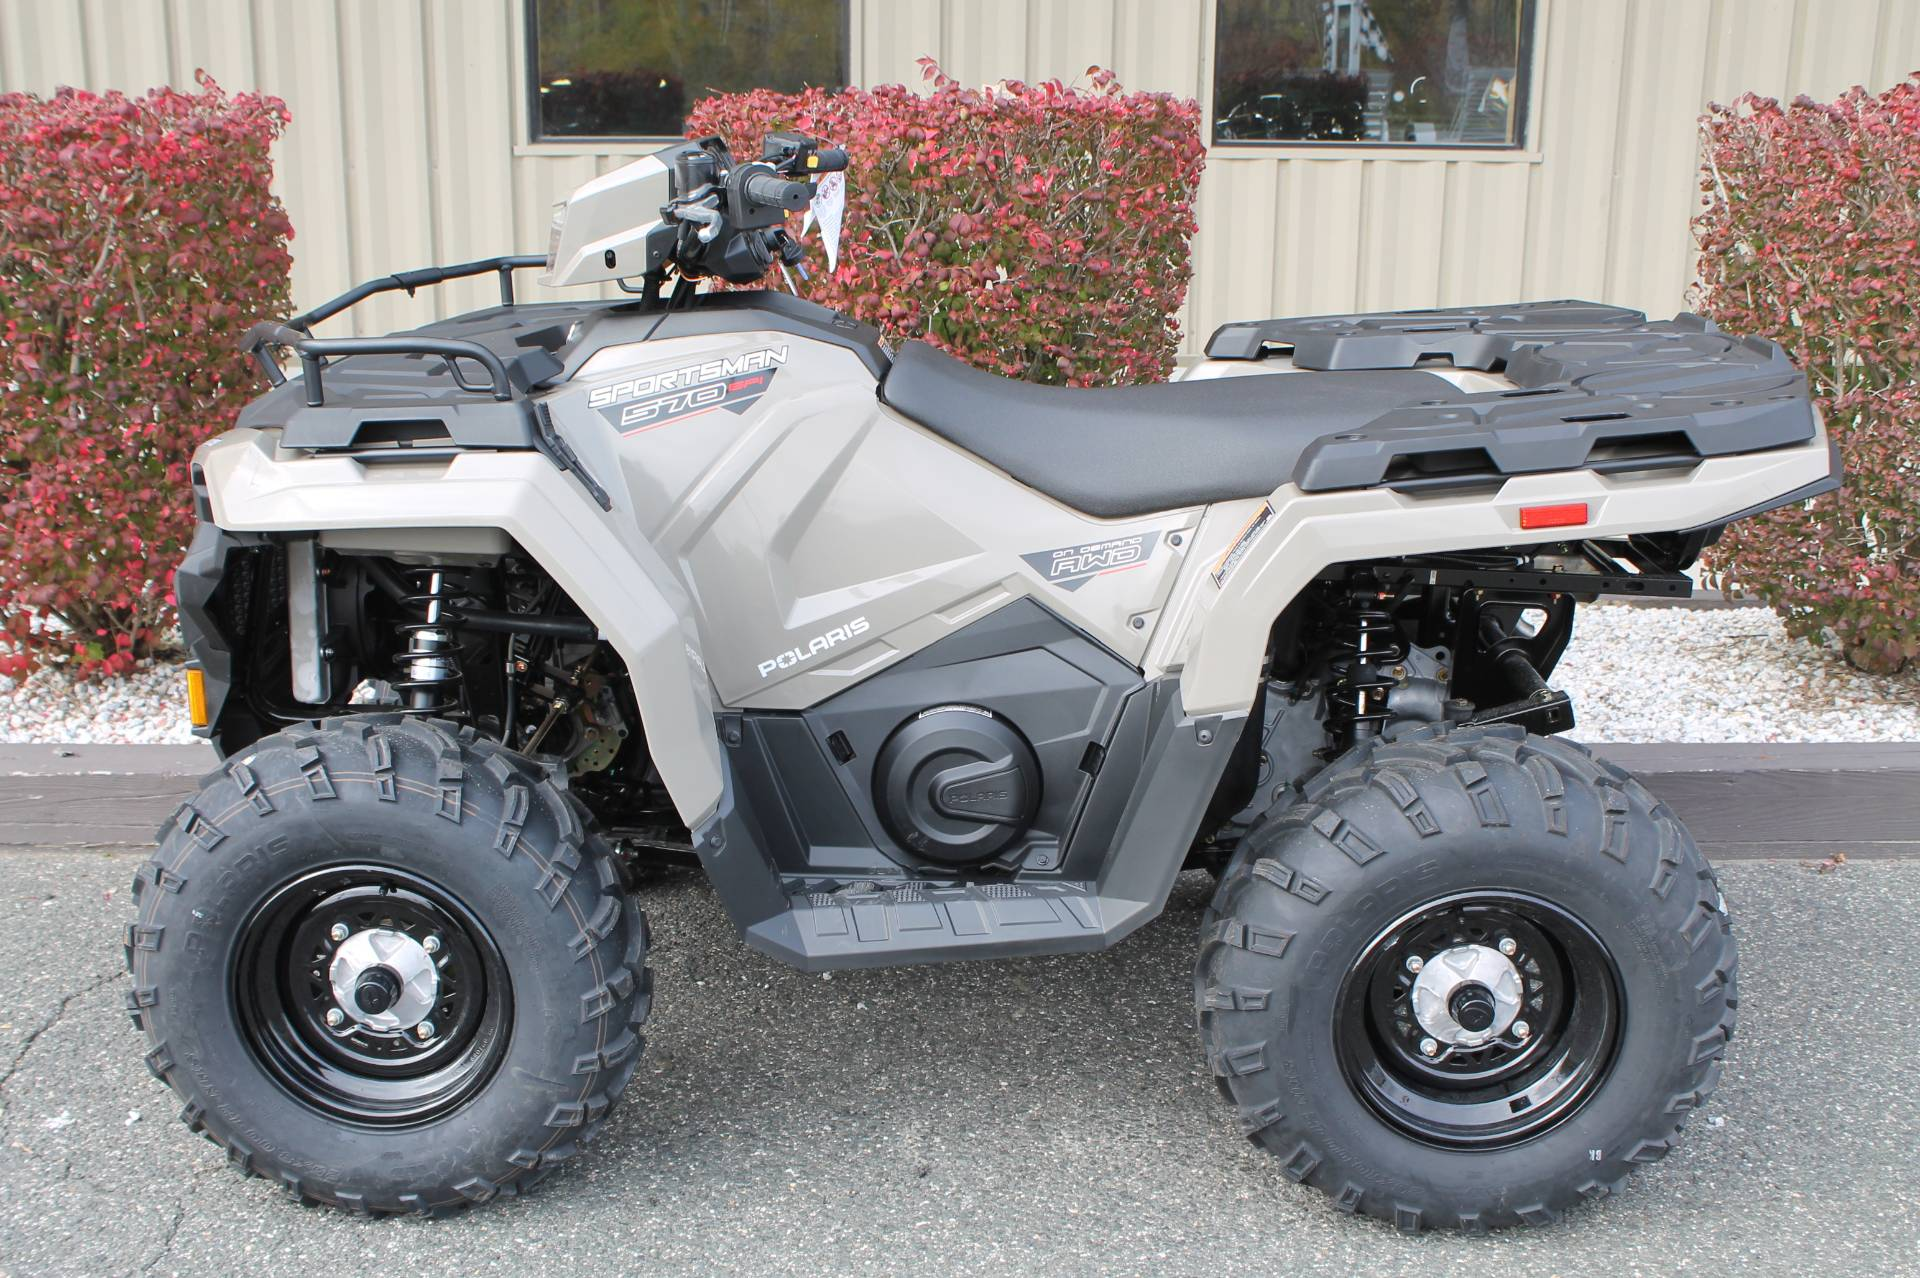 2021 Polaris Sportsman 570 in Adams, Massachusetts